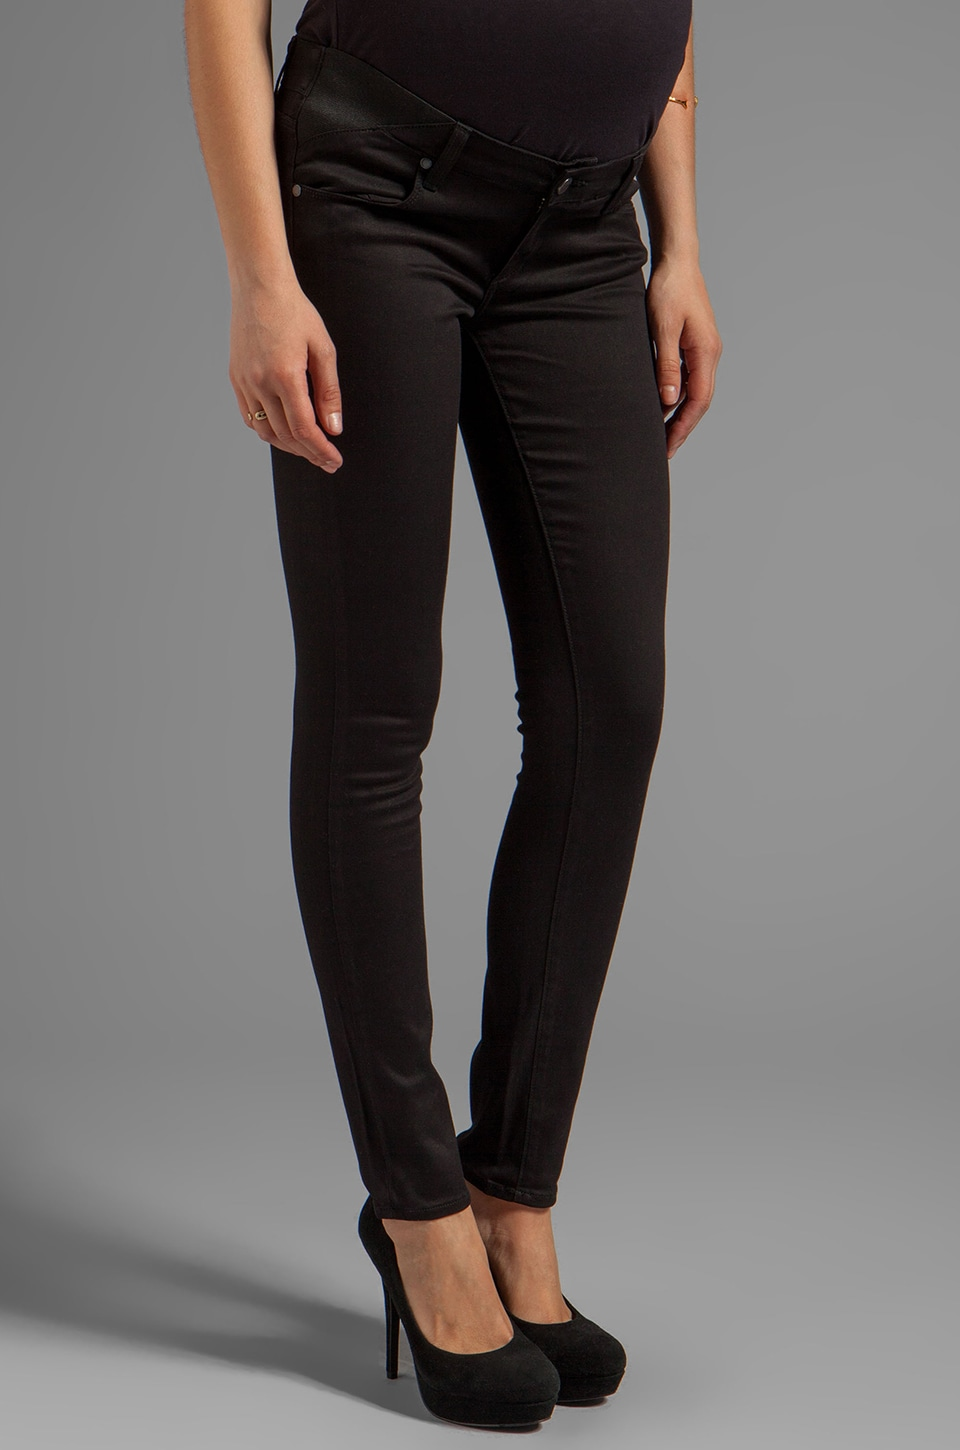 PAIGE Maternity Verdugo Ultra Skinny in Black